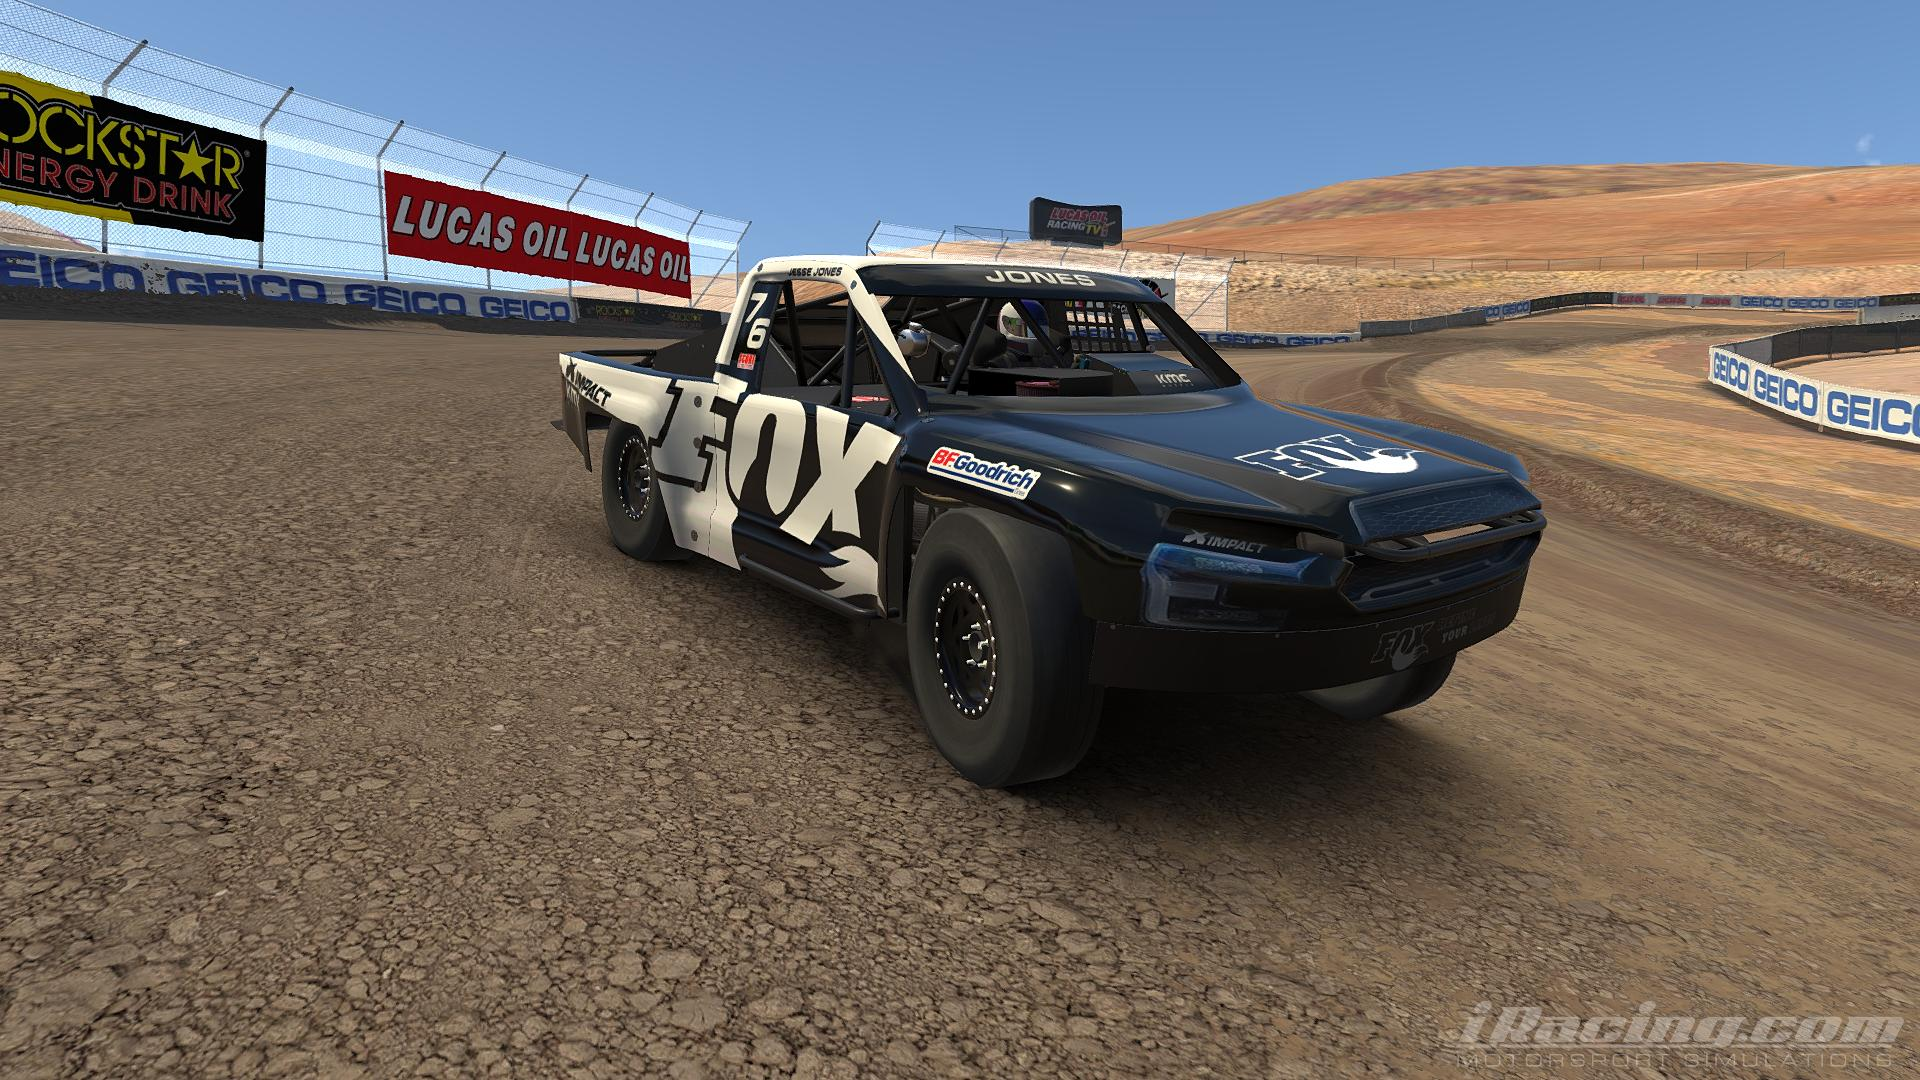 Preview of Jesse Jones Fox Racing Trophy Truck (Pro 2 Lite) by Steve Ficacci